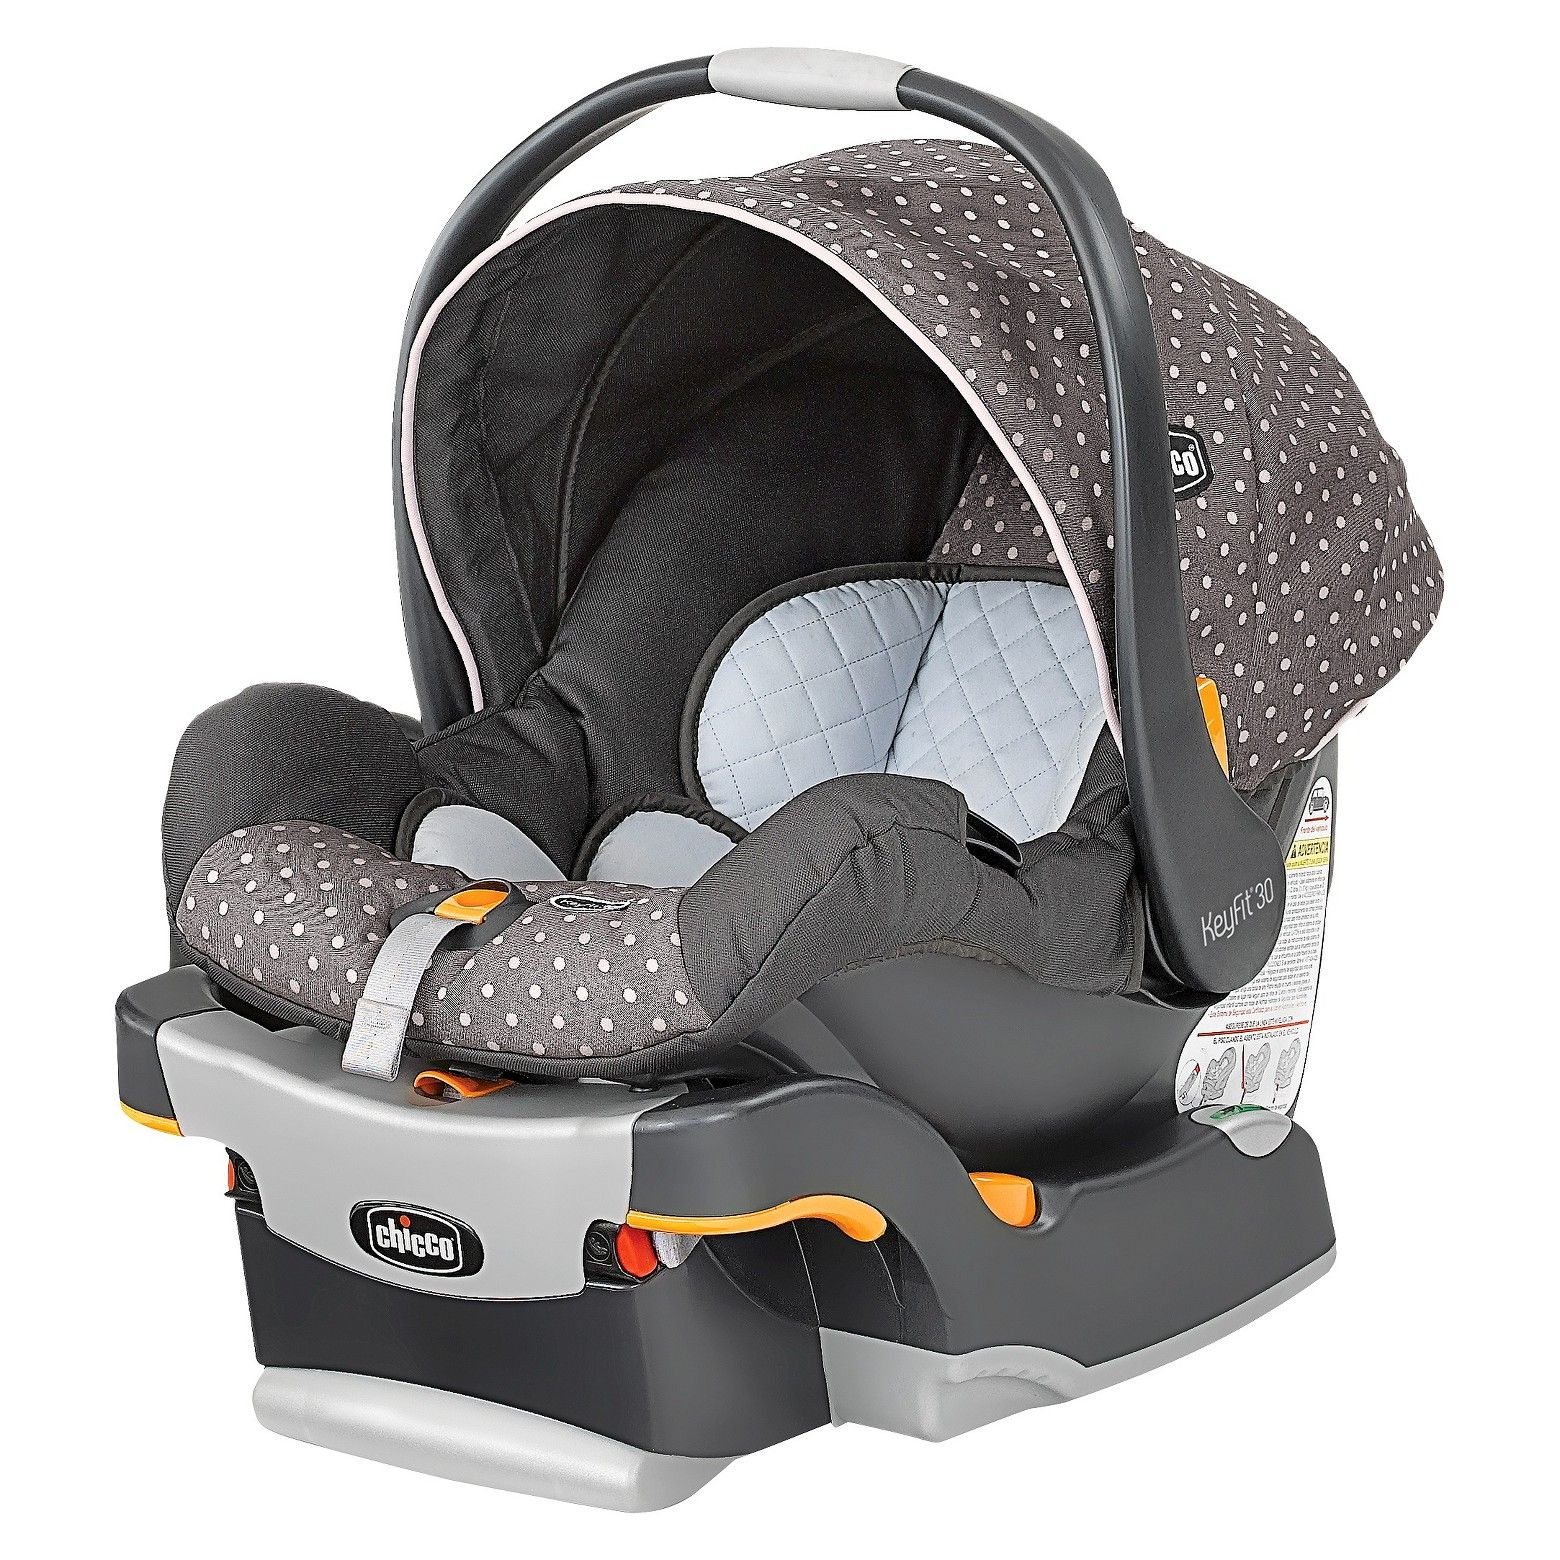 chicco keyfit 30 infant car seat car seats infant and babies rh pinterest com chicco keyfit 30 car seat installation without base chicco keyfit 30 car seat installation without base